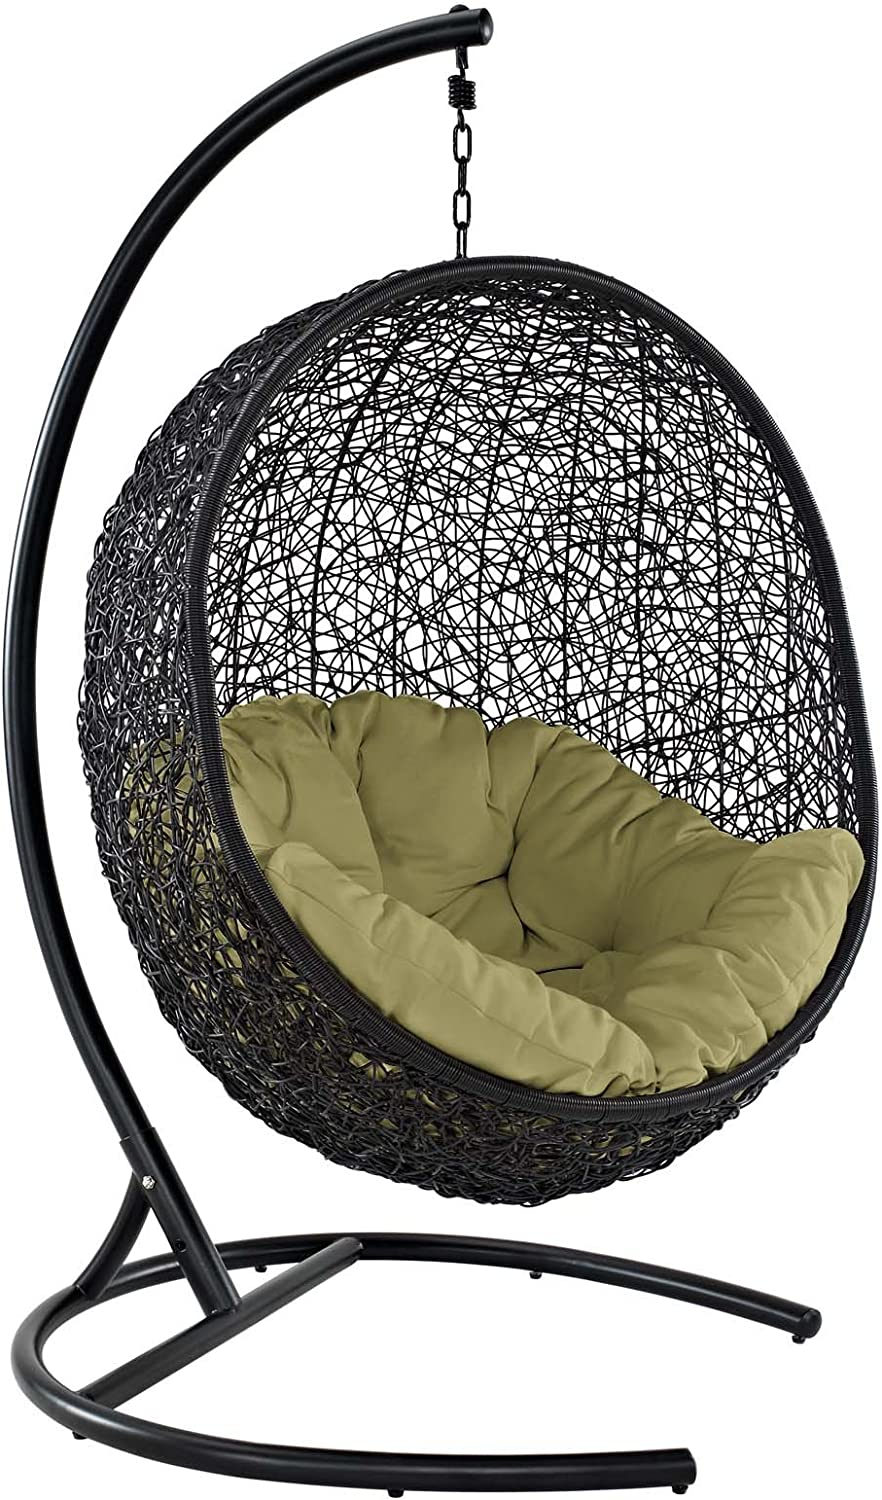 Modway EEI-739-PER-SET Encase Wicker Rattan Outdoor Patio Porch Lounge Egg, Swing Chair with Stand, Peridot